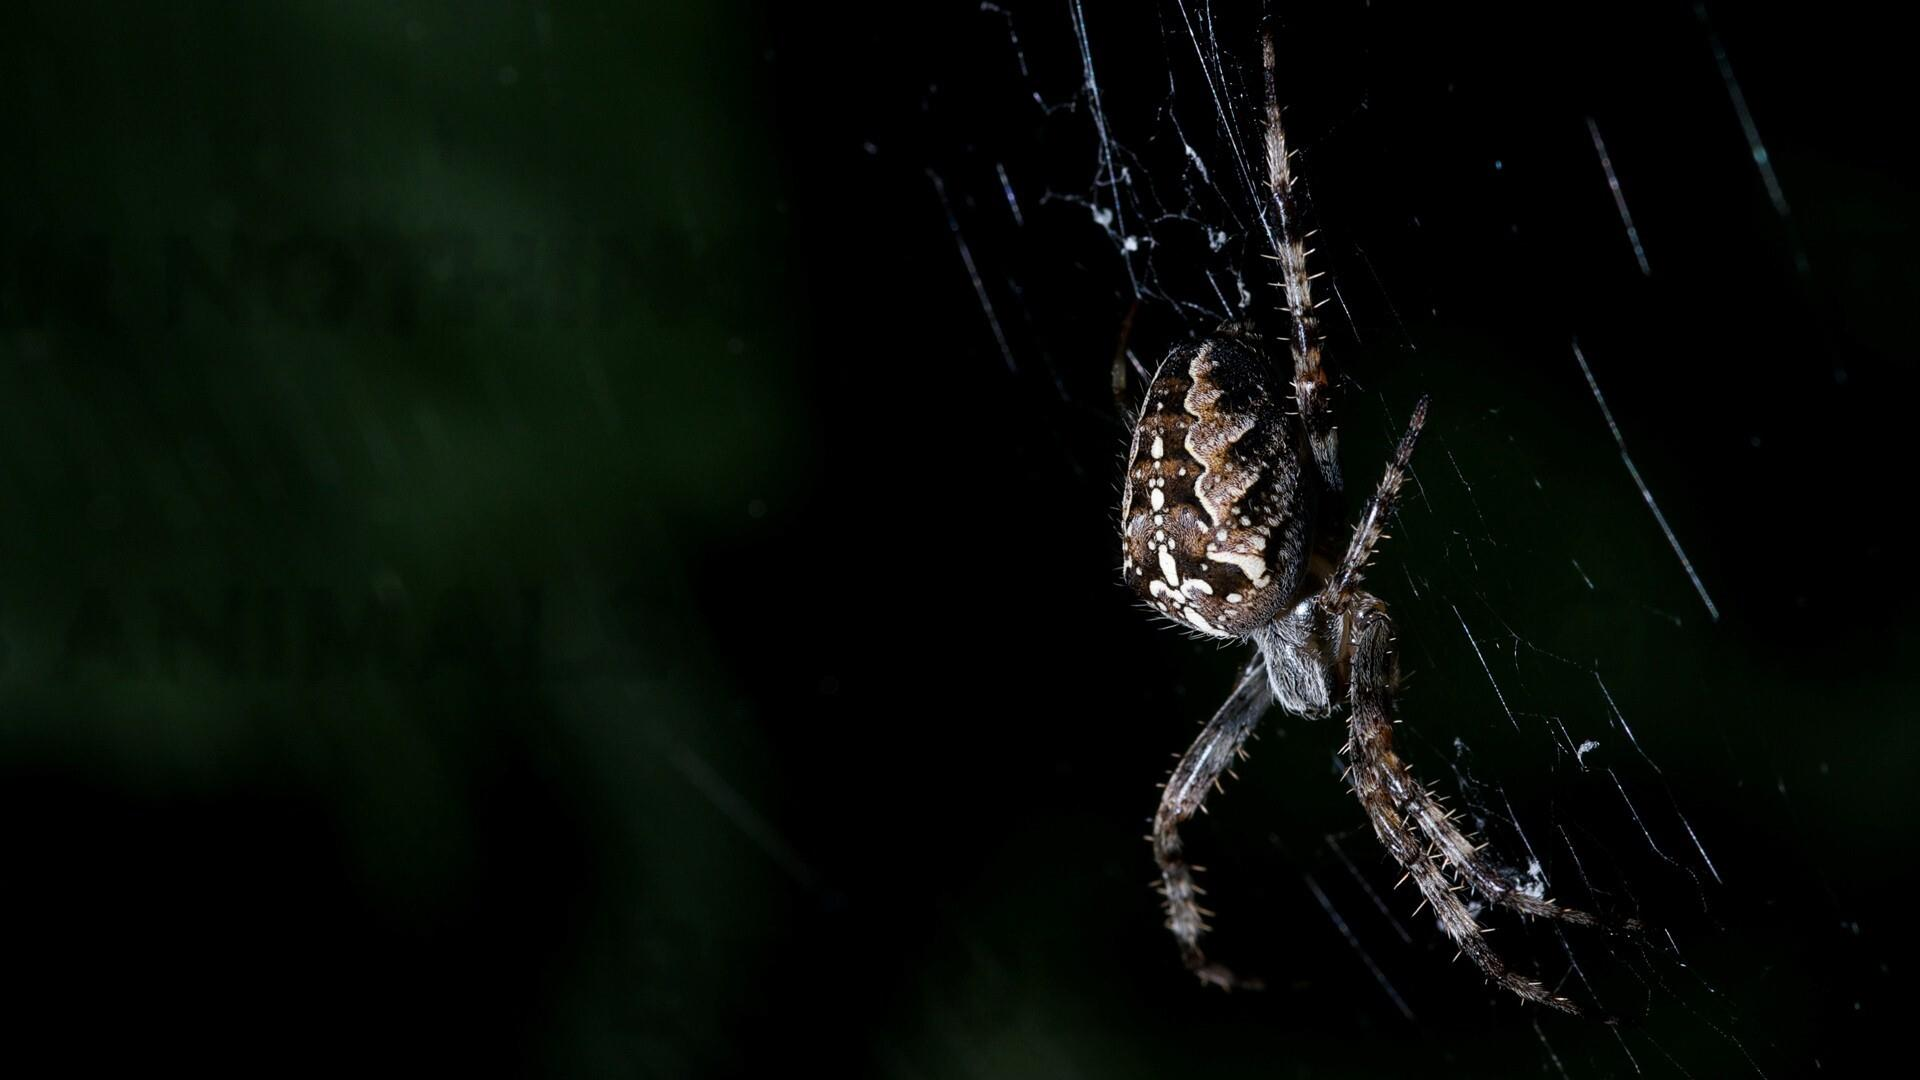 1920x1080 Night Photography of Spider